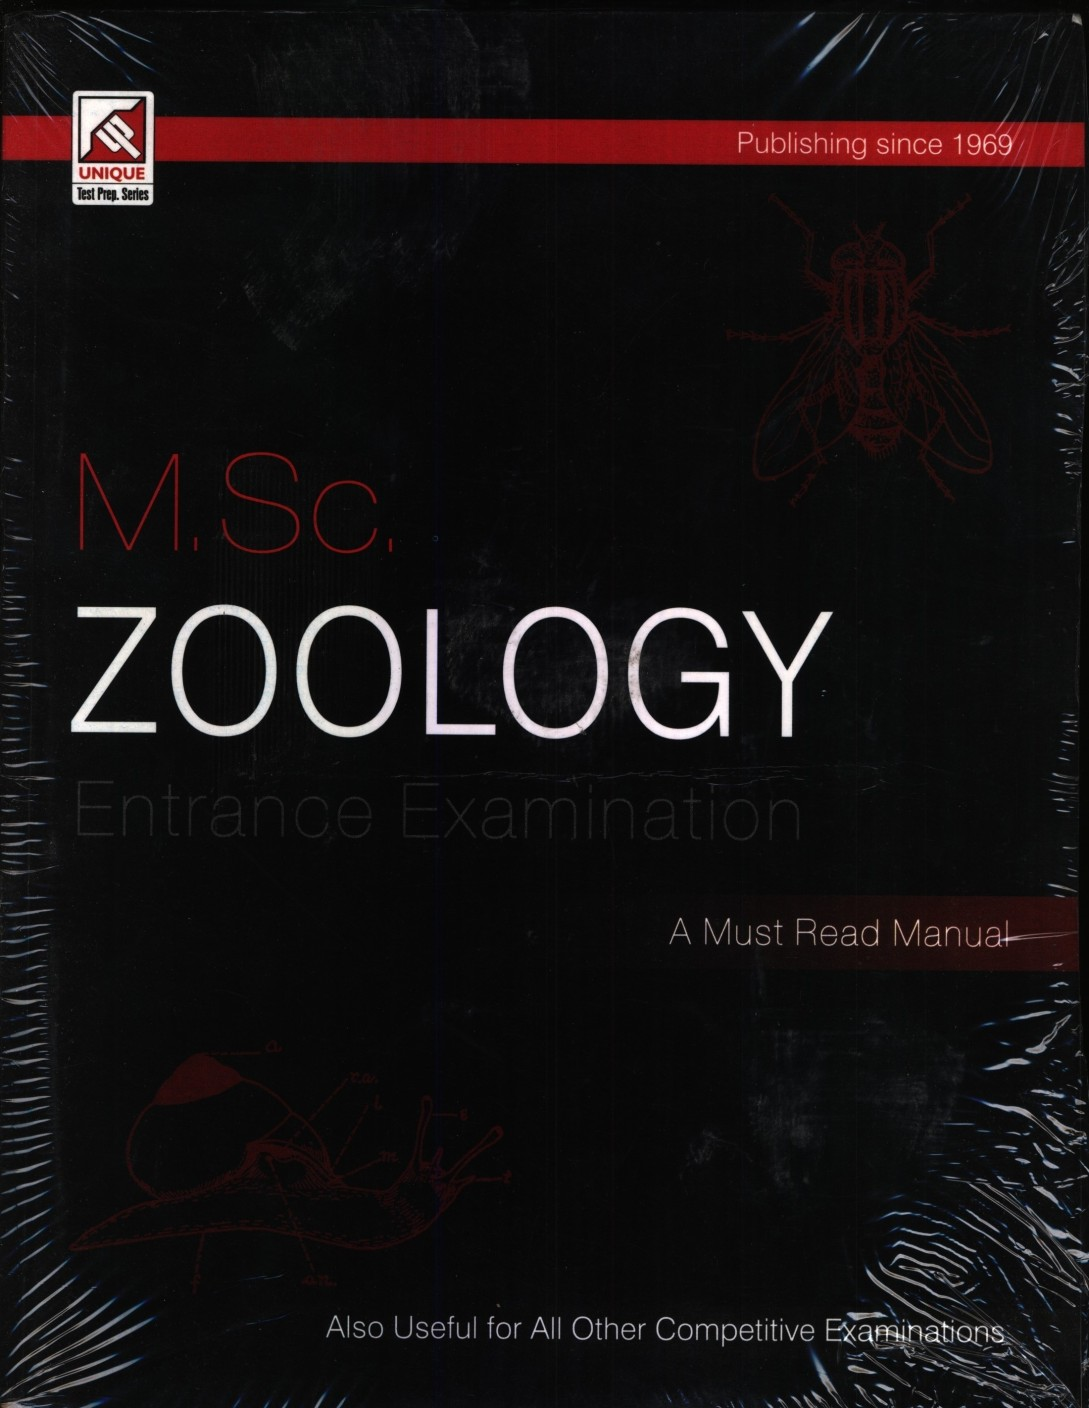 Zoology poster design - Add To Cart